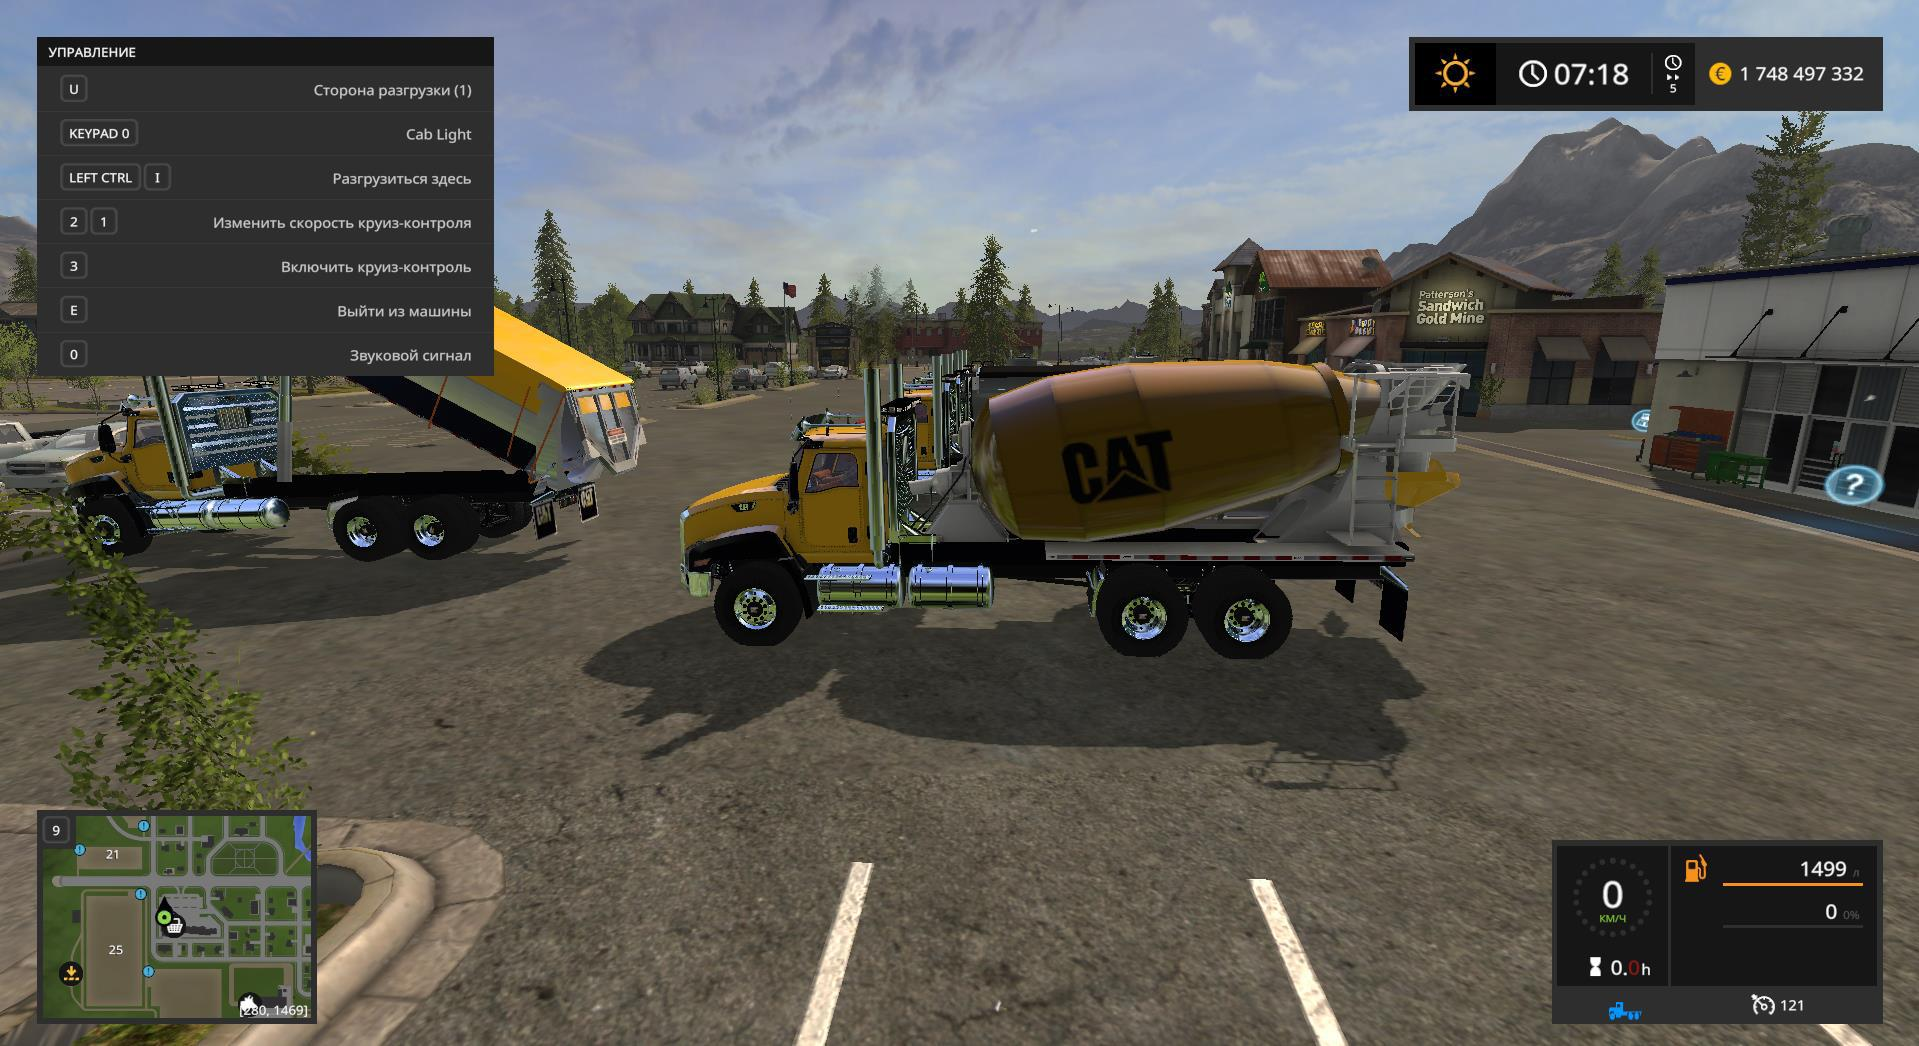 CAT CT660 Concrete Mixer v 1.0